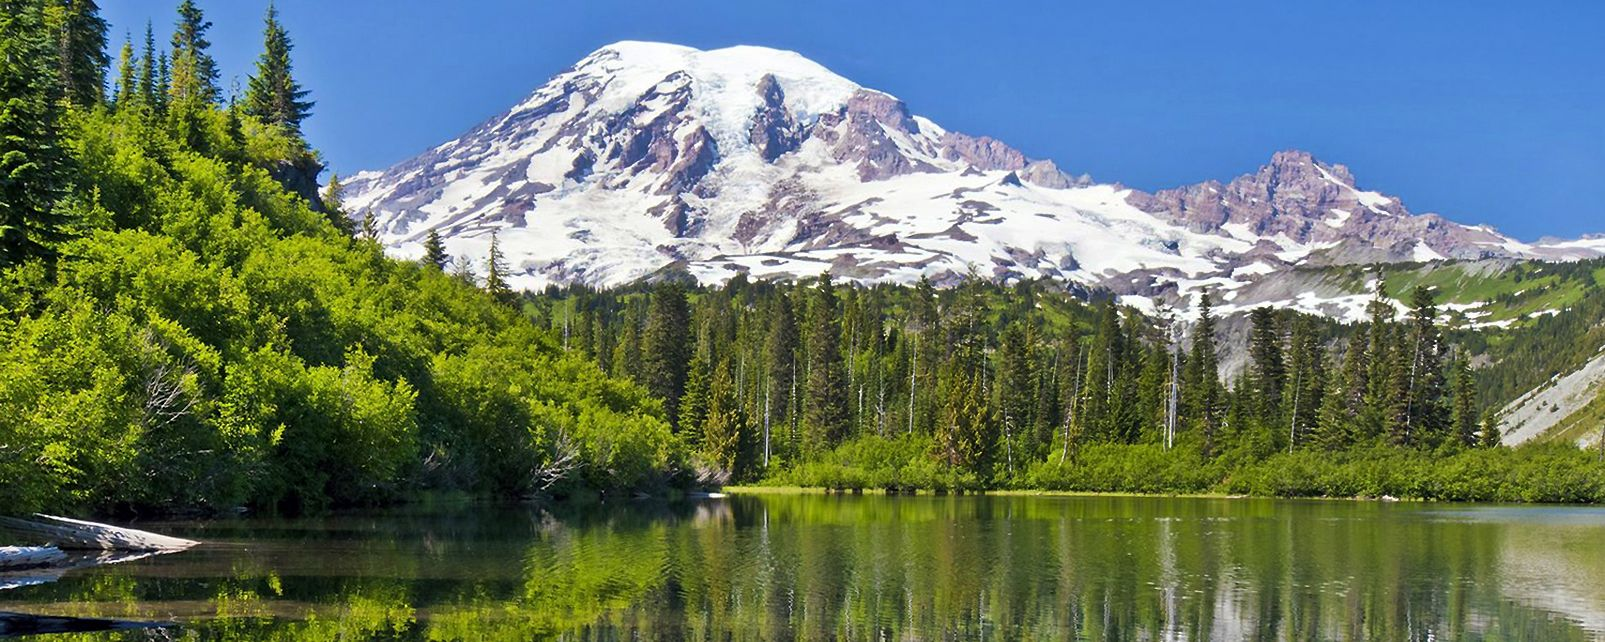 Mount Rainier , United States of America